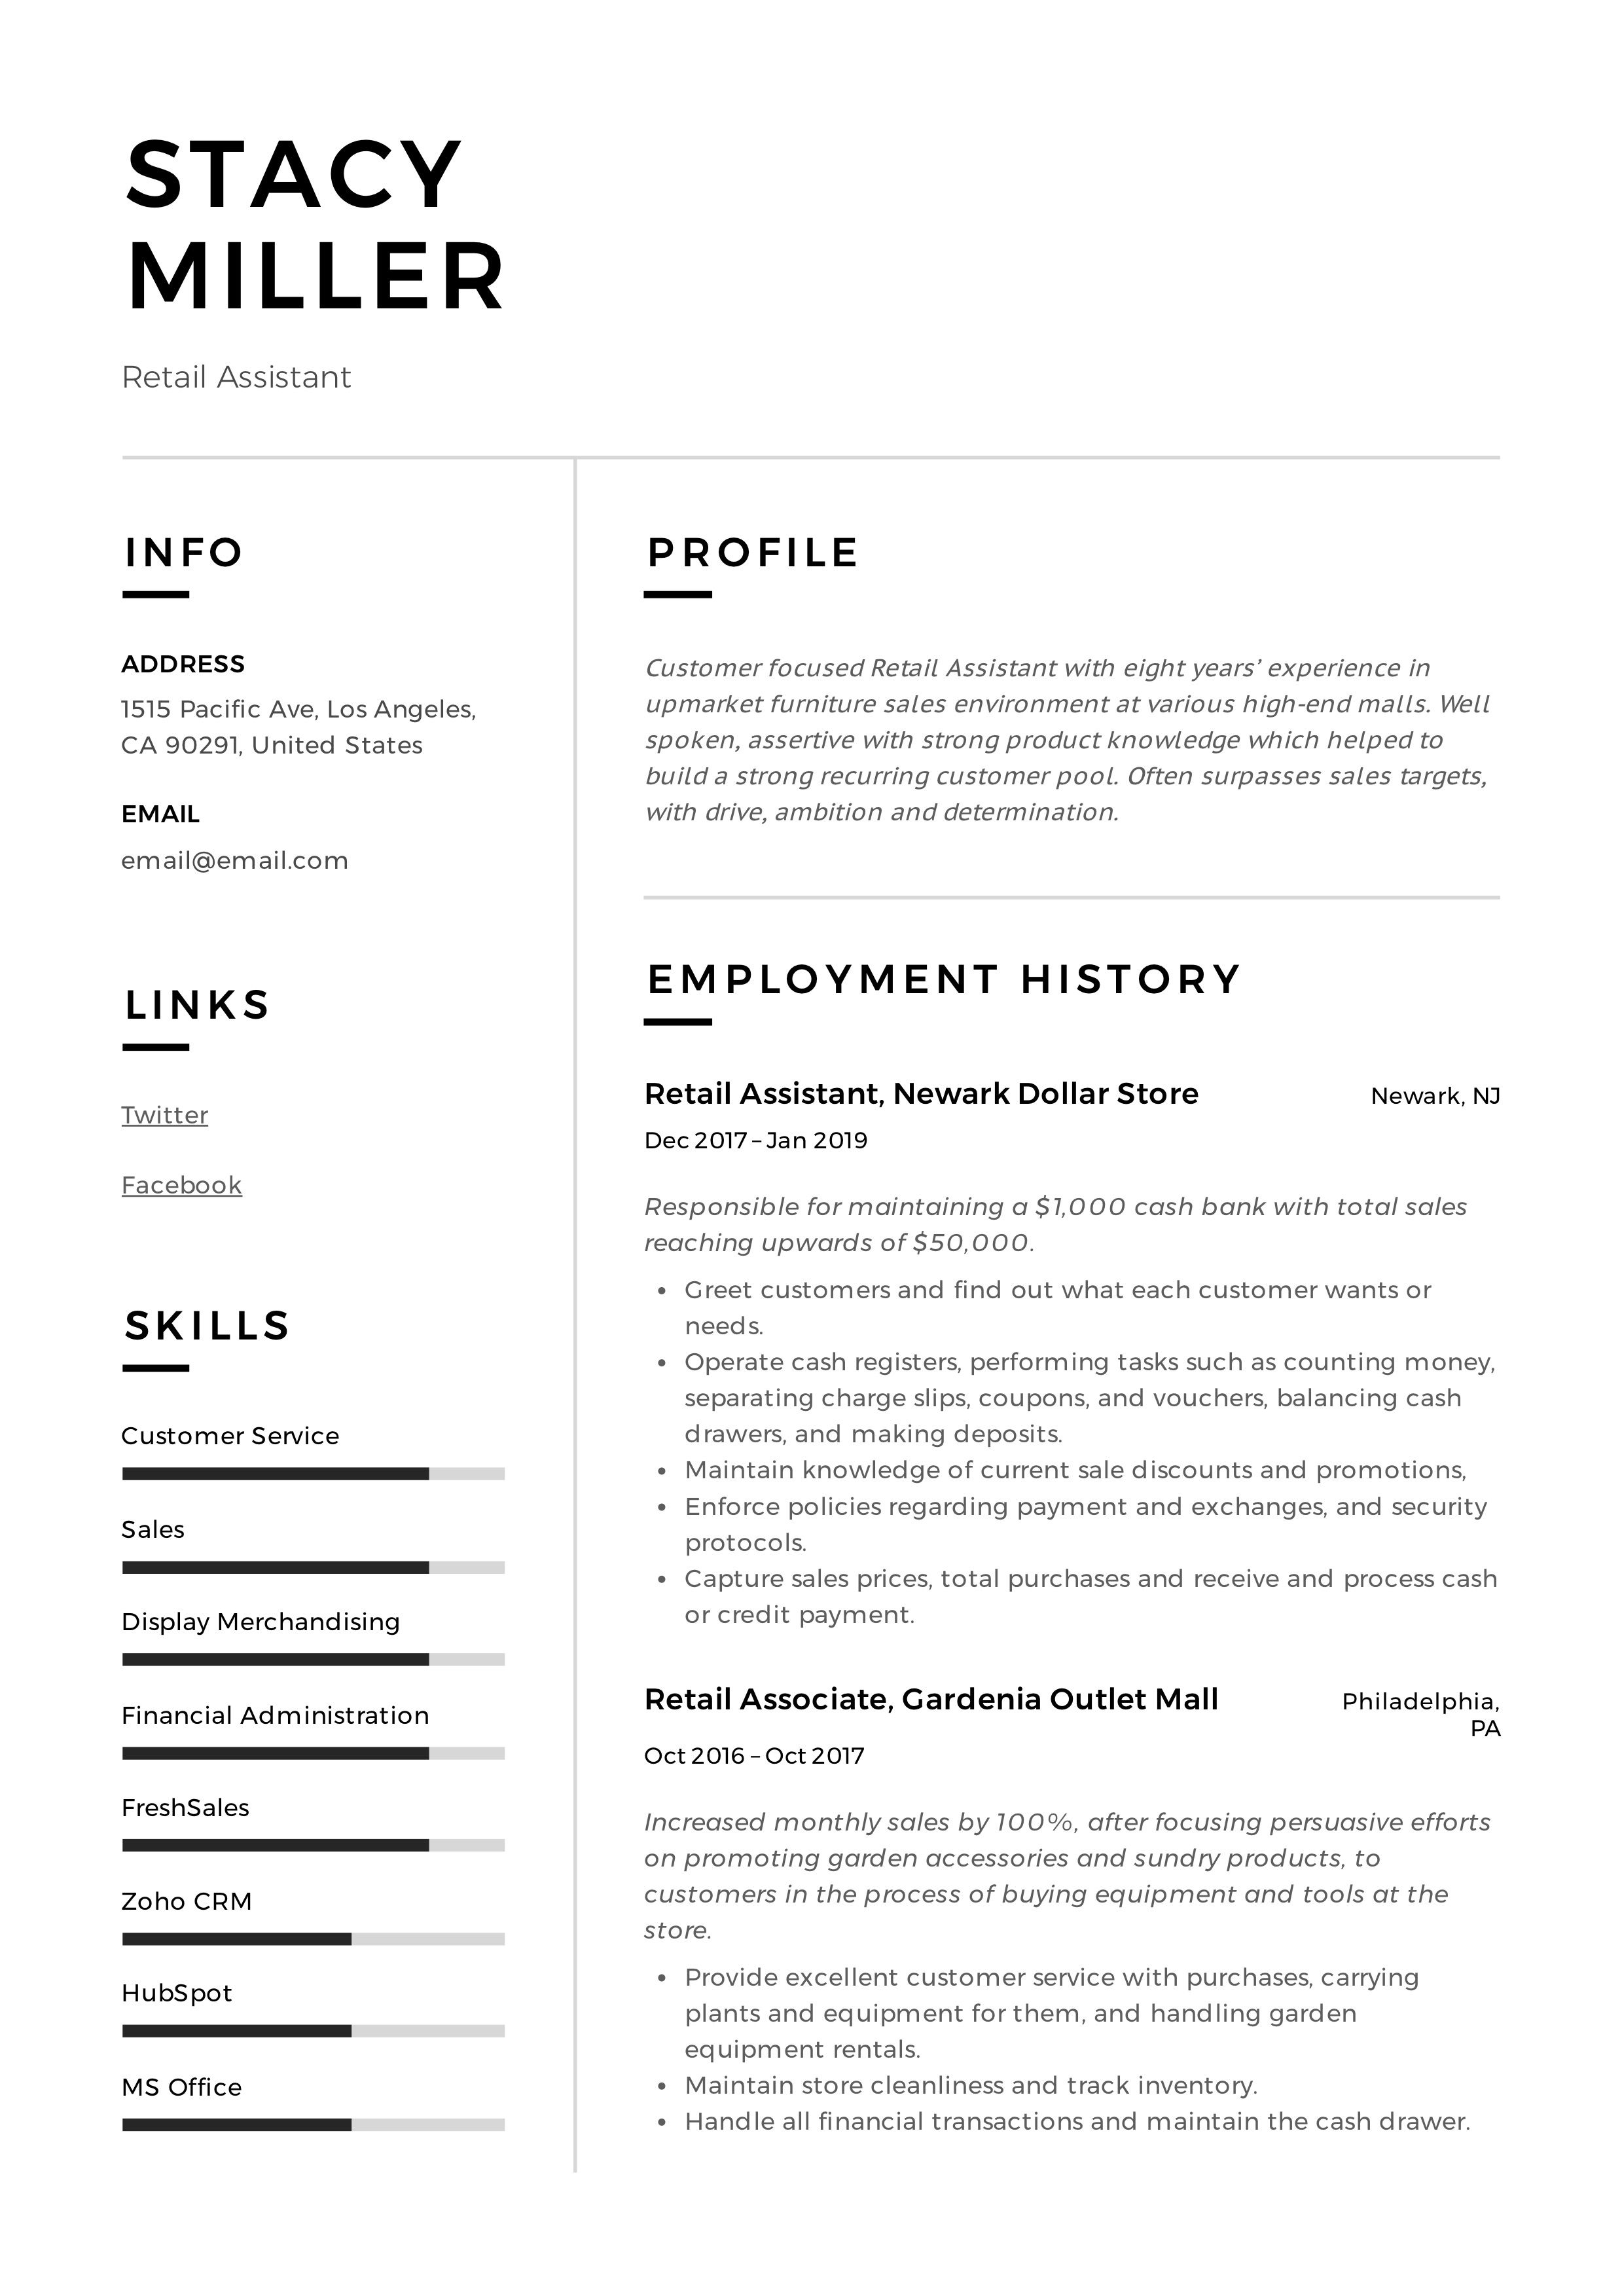 12 Retail Assistant Resume Samples & Writing Guide in 2020